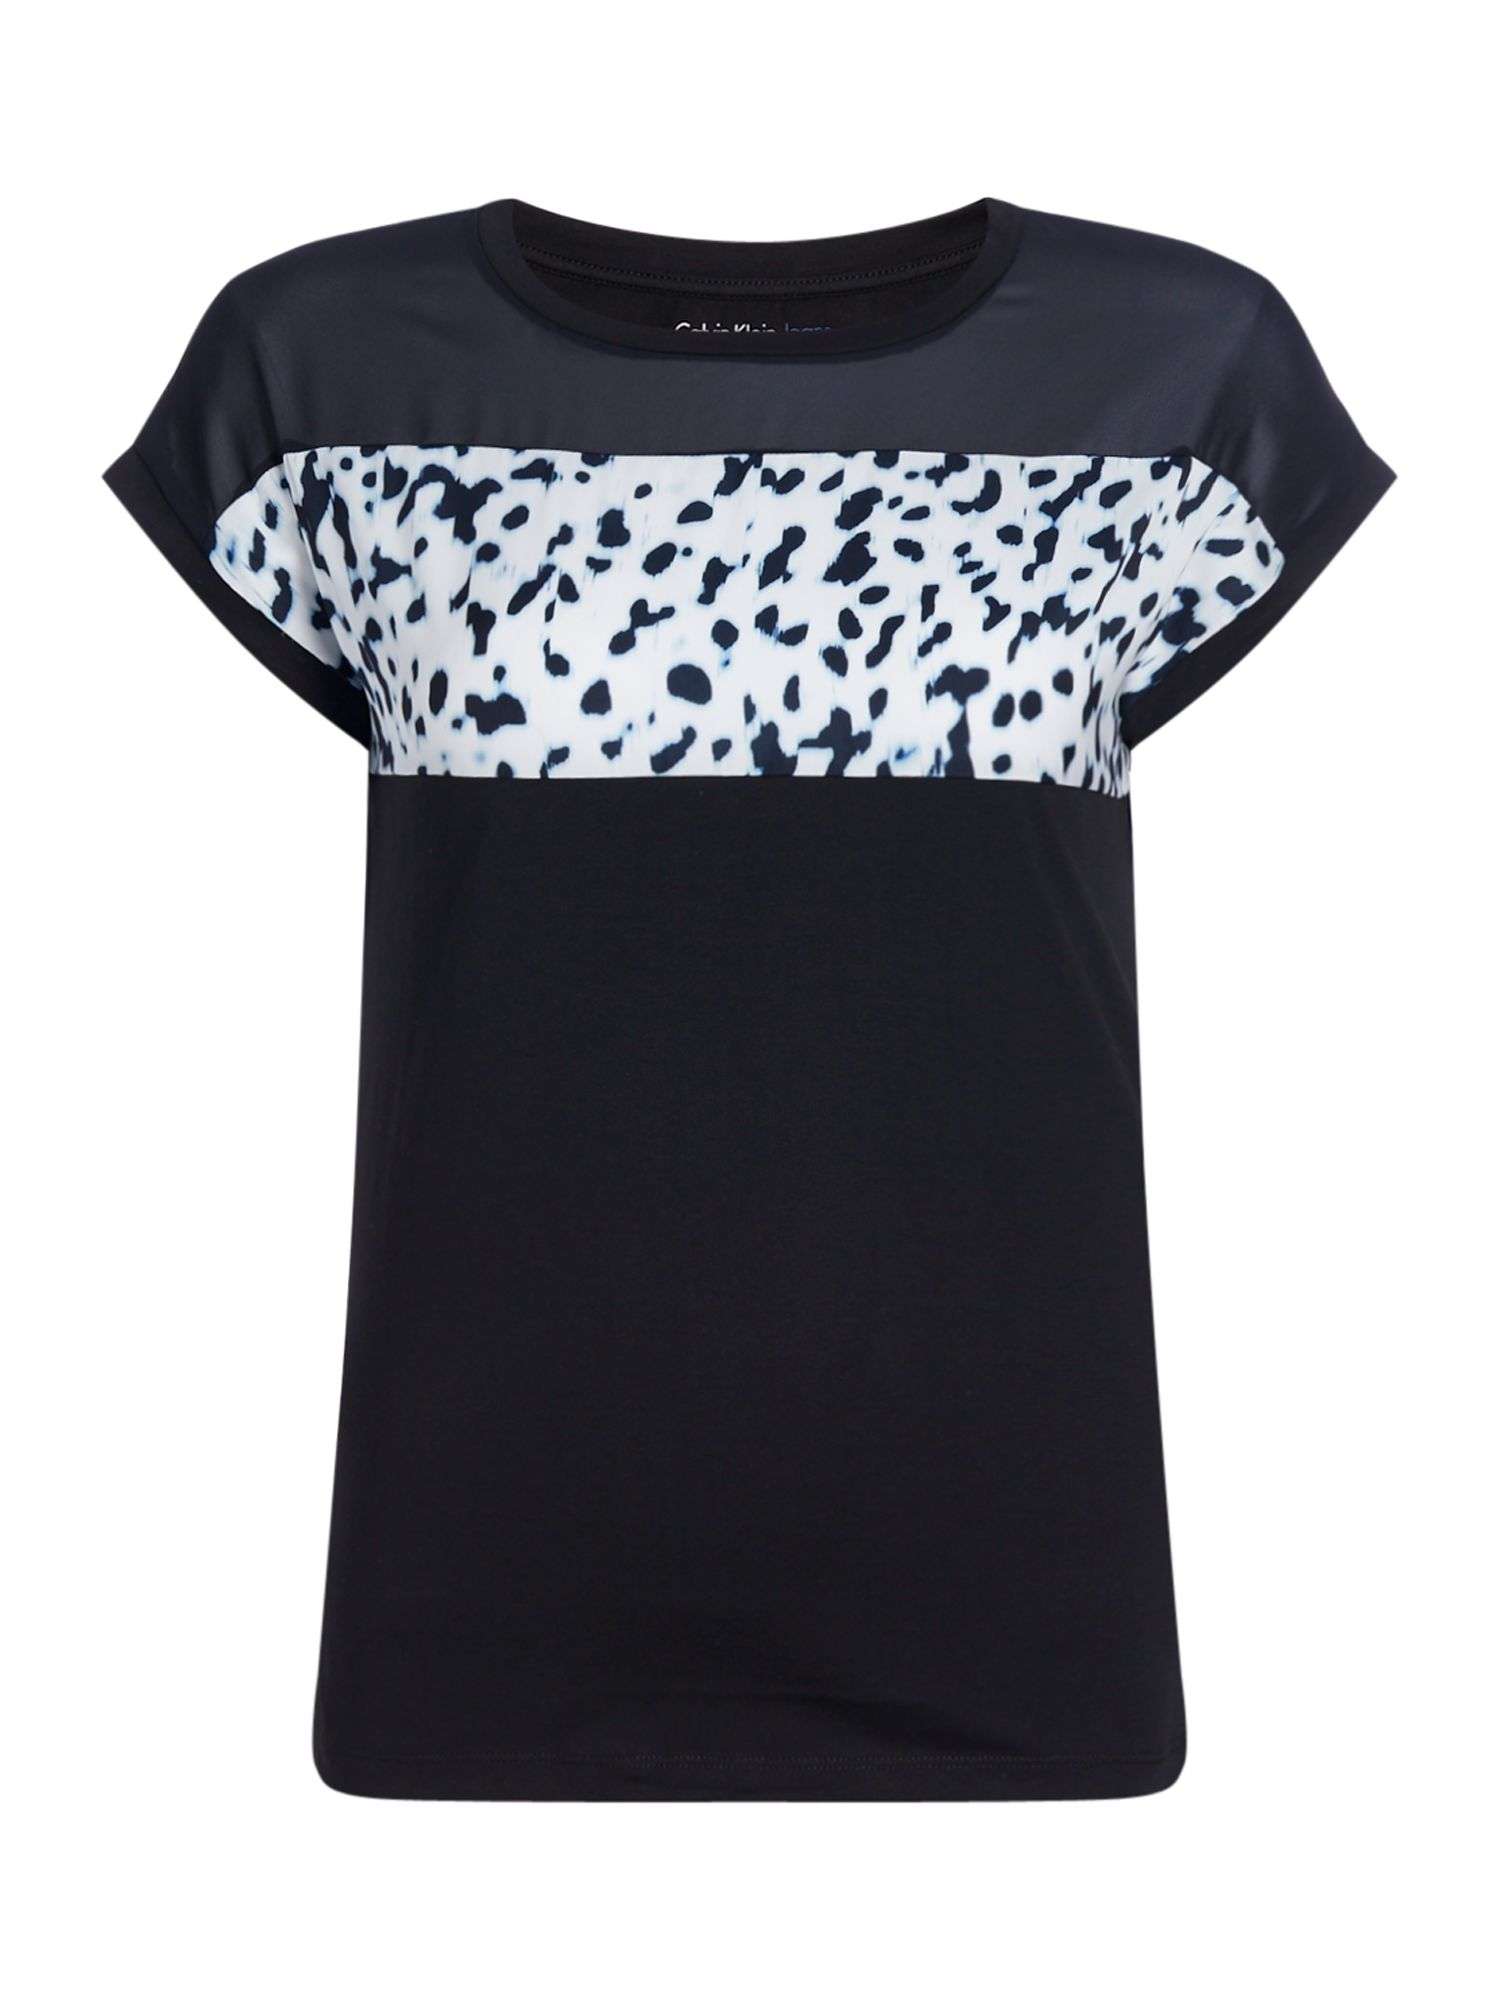 Calvin Klein Cap sleeves crew neck t shirt with pattern print, Black